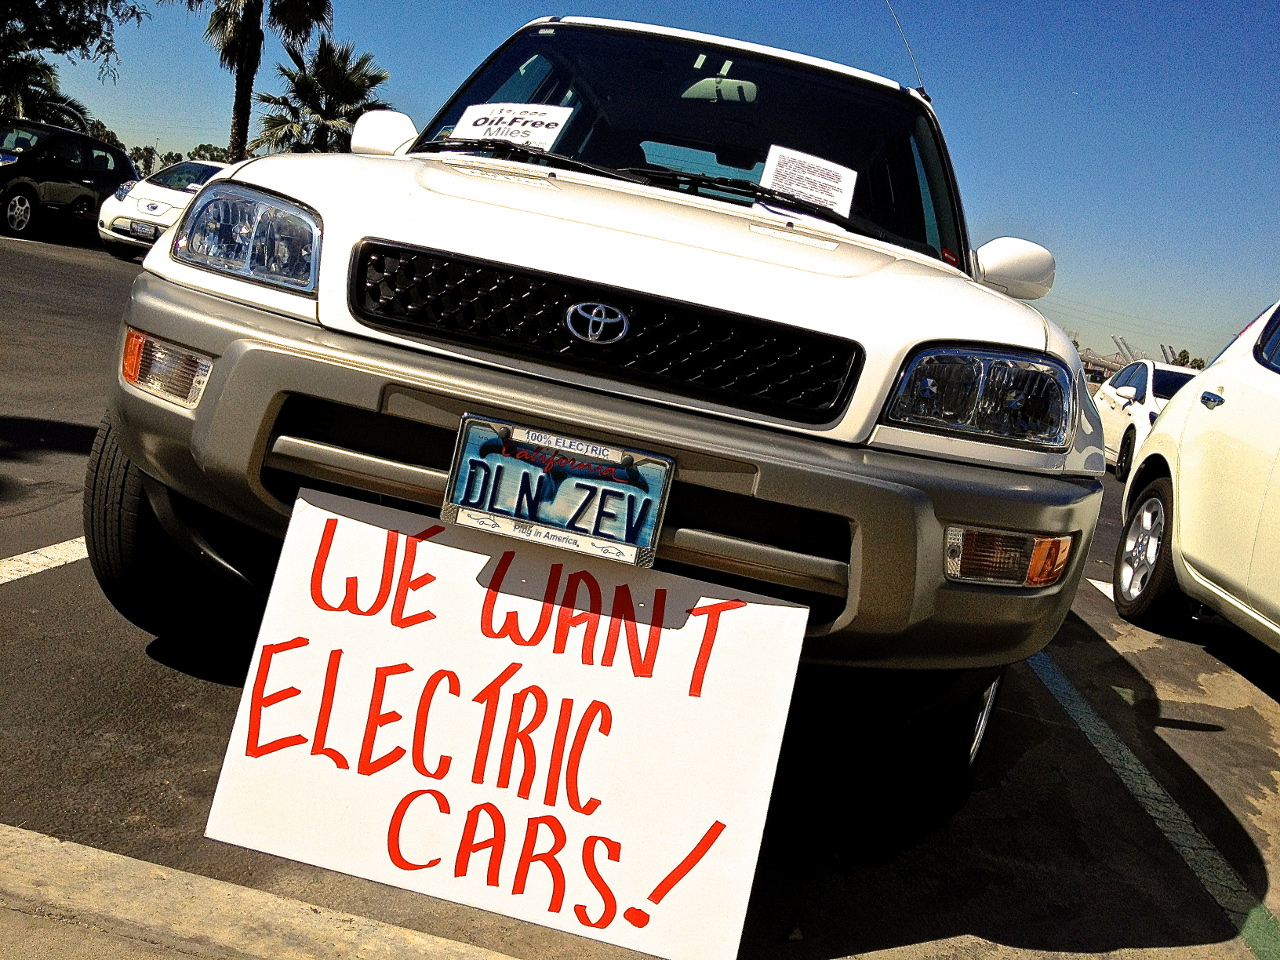 NPID2013 We Want Electric Cars